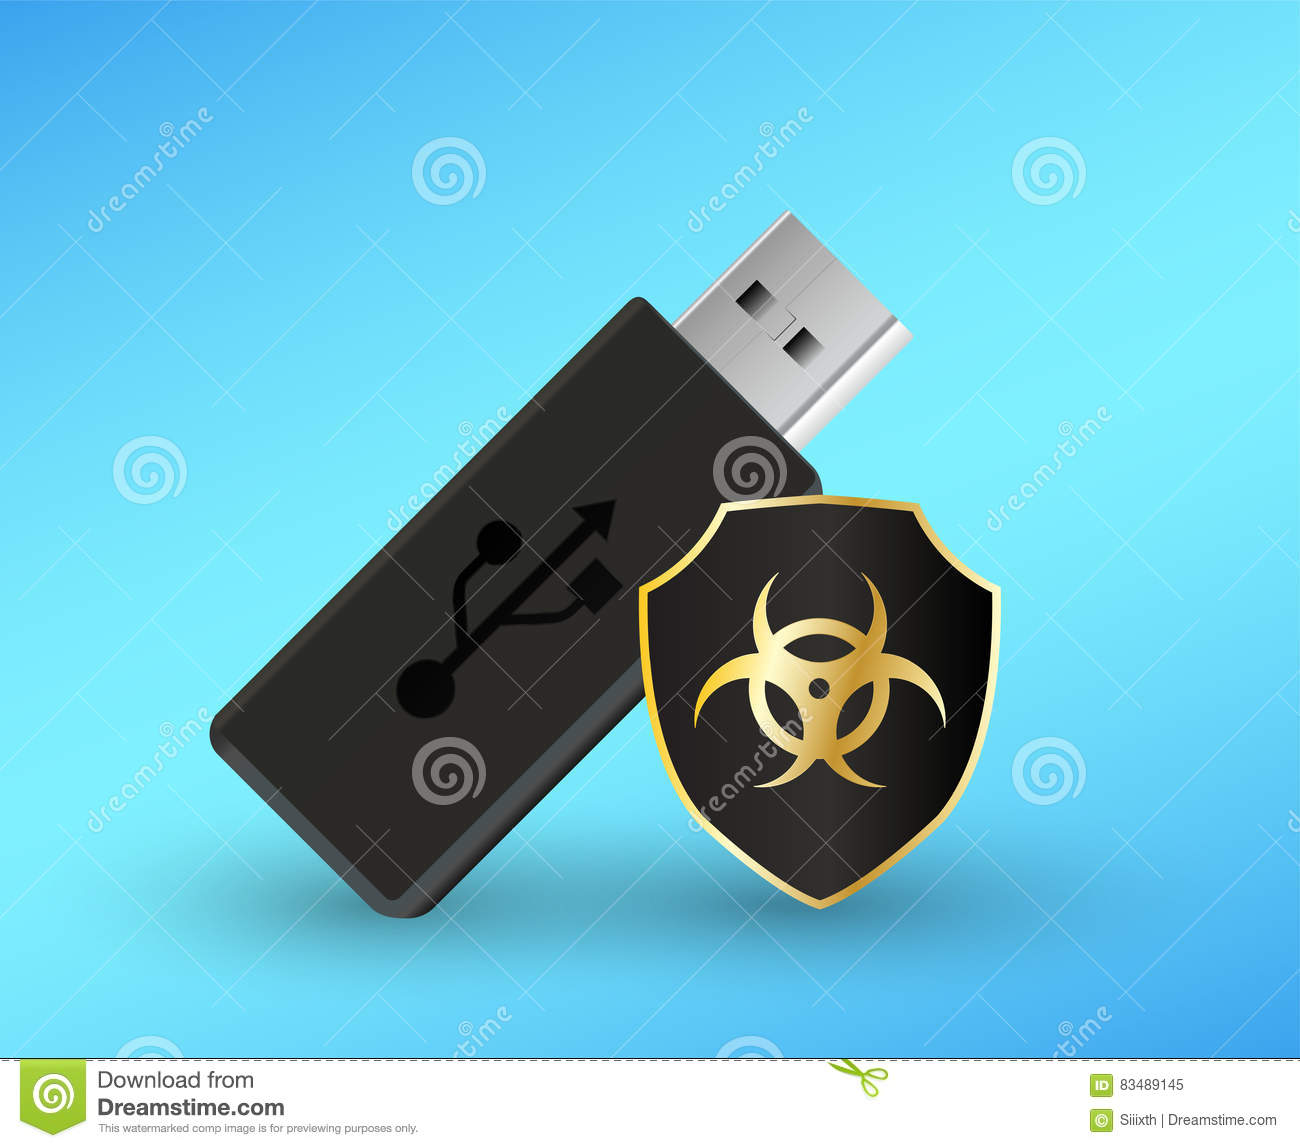 How to scan usb flash drive (stick) with avast antivirus.